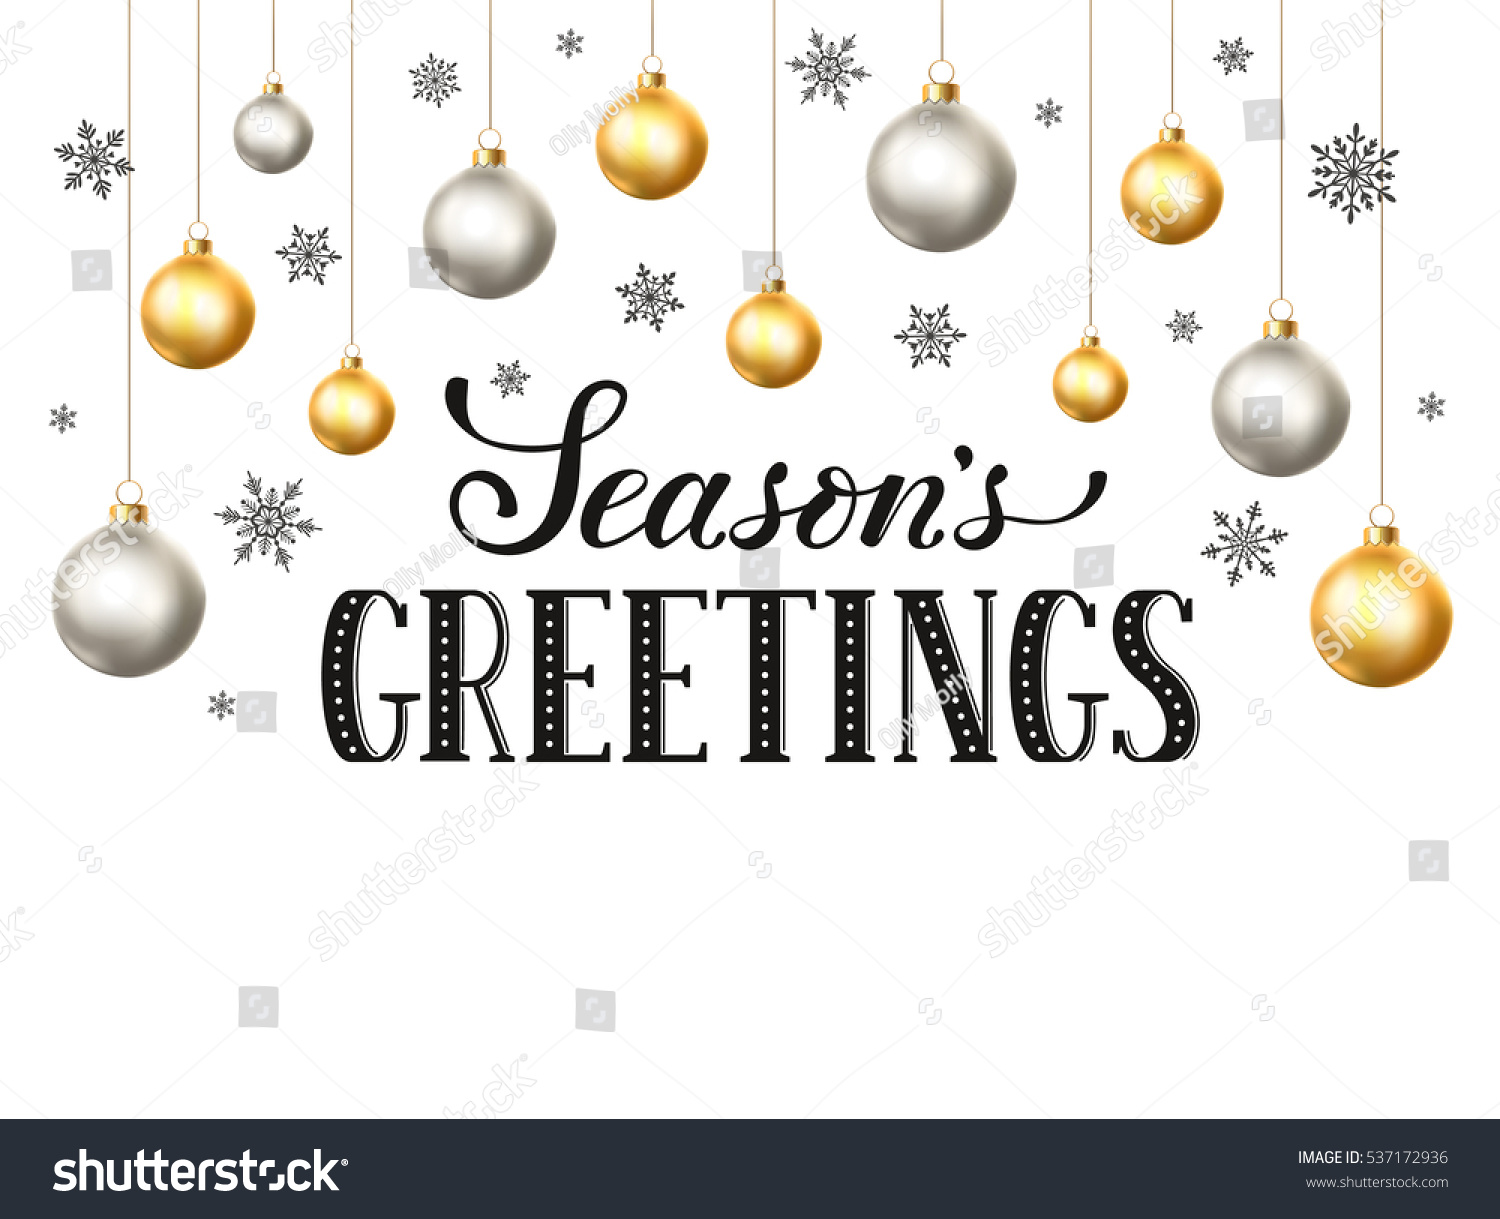 Happy holidays greeting card template modern stock vector happy holidays greeting card template modern new year lettering with snowflakes ans christmas balls isolated kristyandbryce Image collections